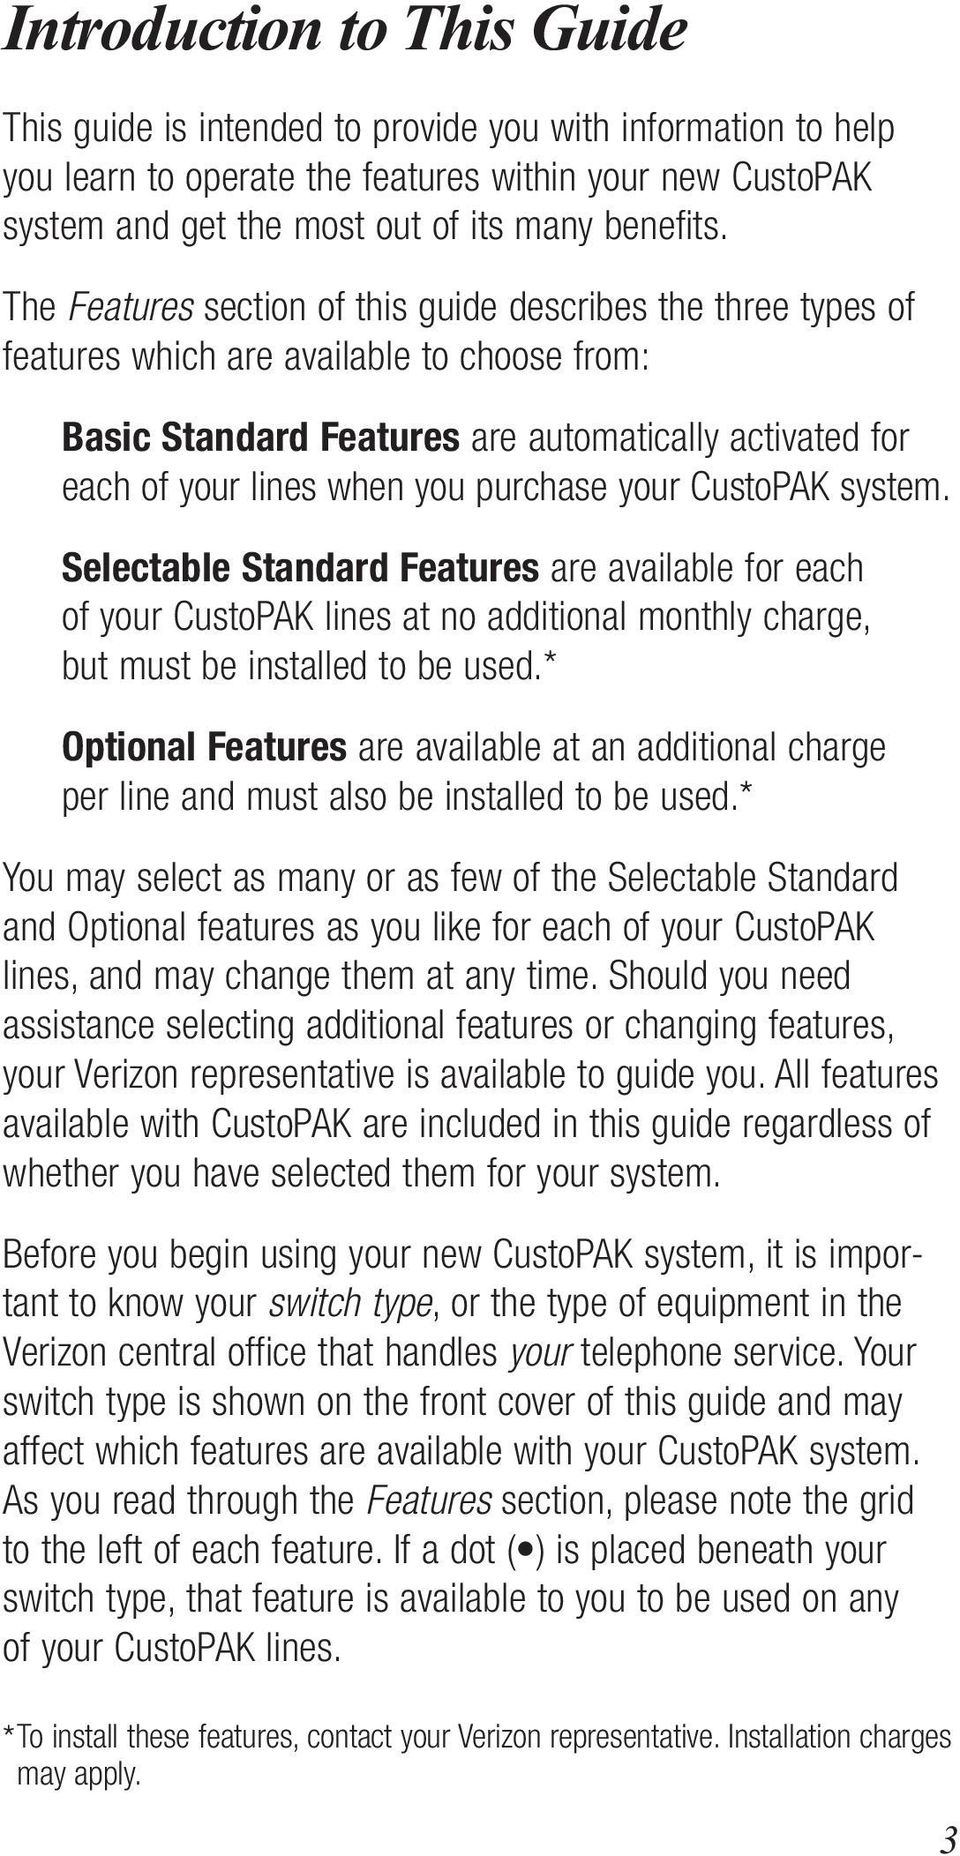 purchase your CustoPAK system. Selectable Standard Features are available for each of your CustoPAK lines at no additional monthly charge, but must be installed to be used.